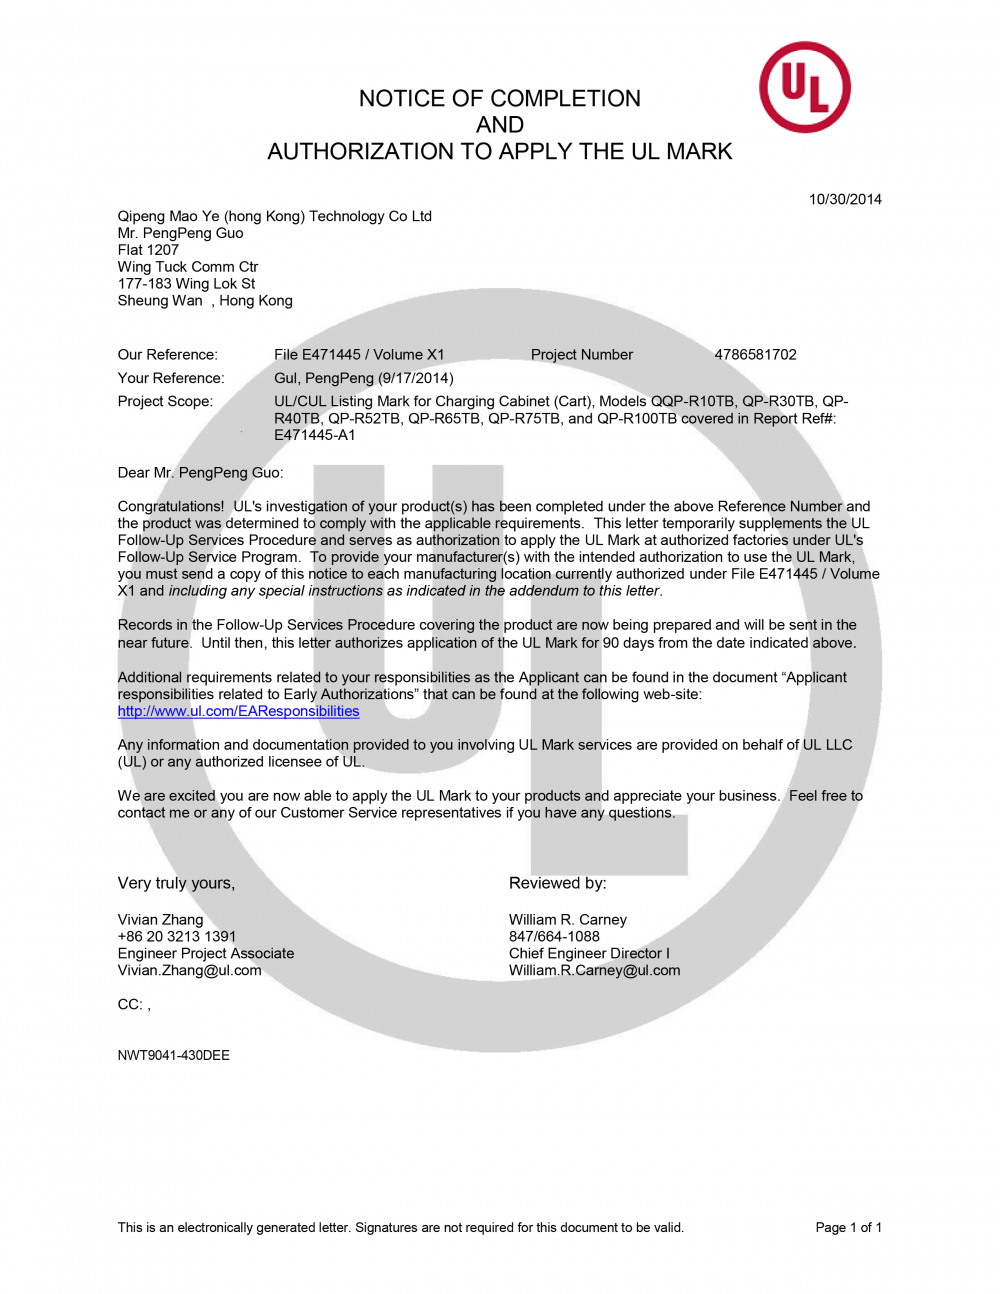 NOTICE OF COMPLETION AUTHORIZATION TO APPLY THE UL MARK